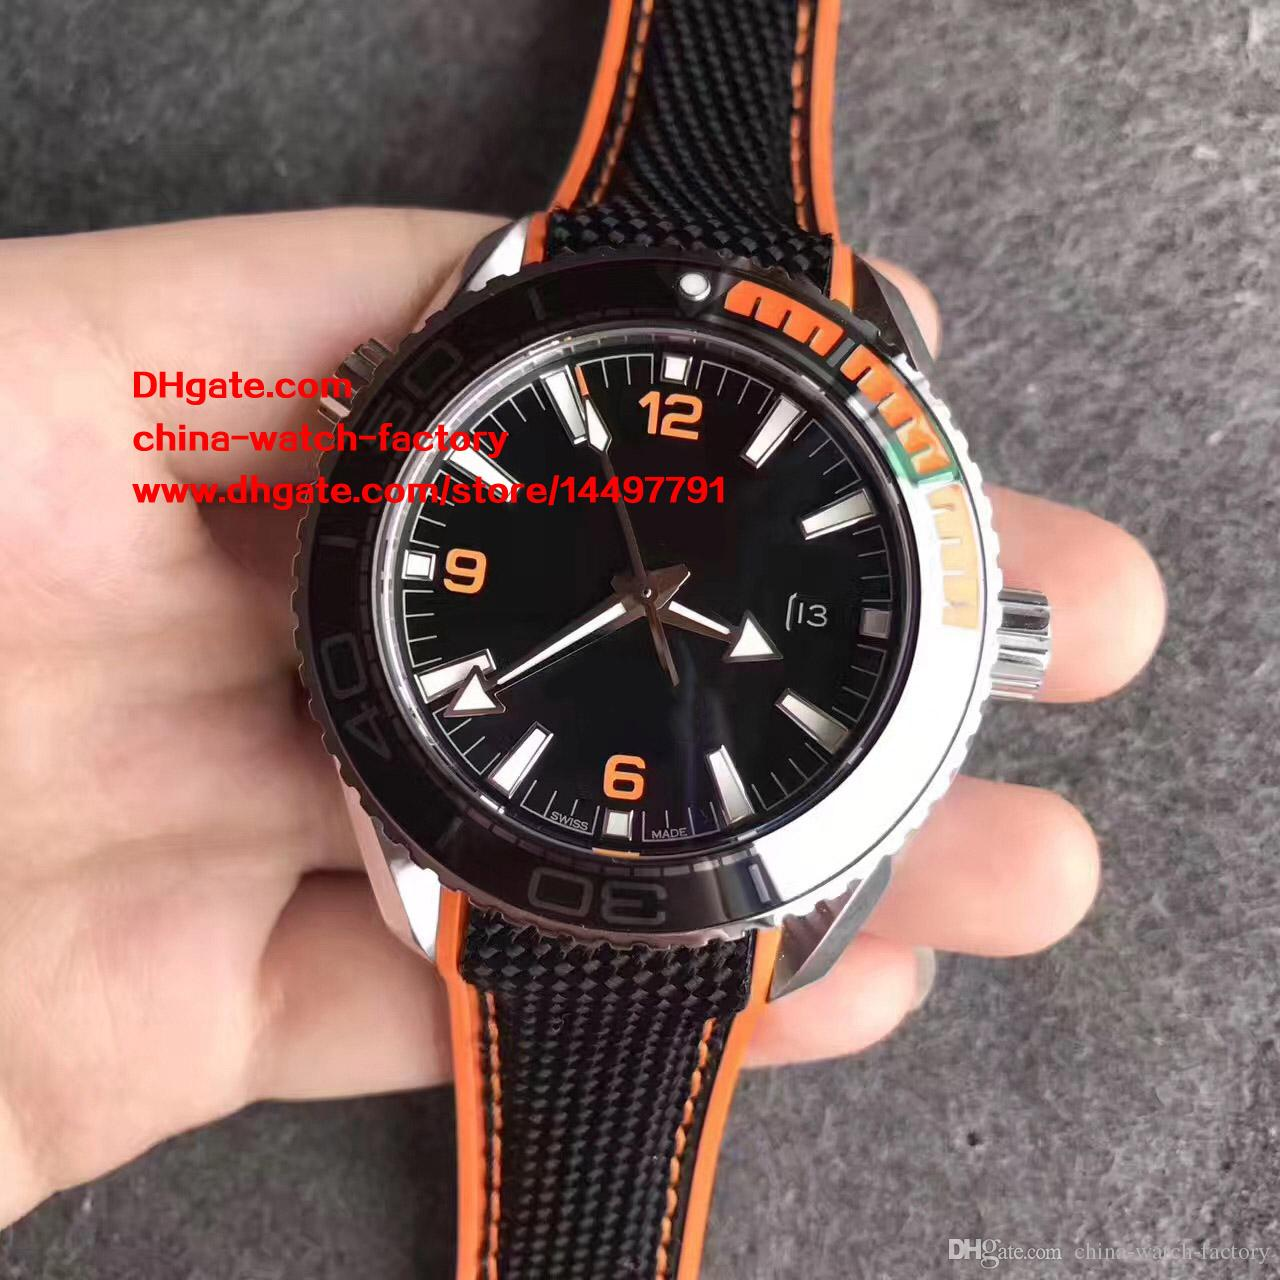 see omega me planet r glad seamaster watches comments ocean to you orange